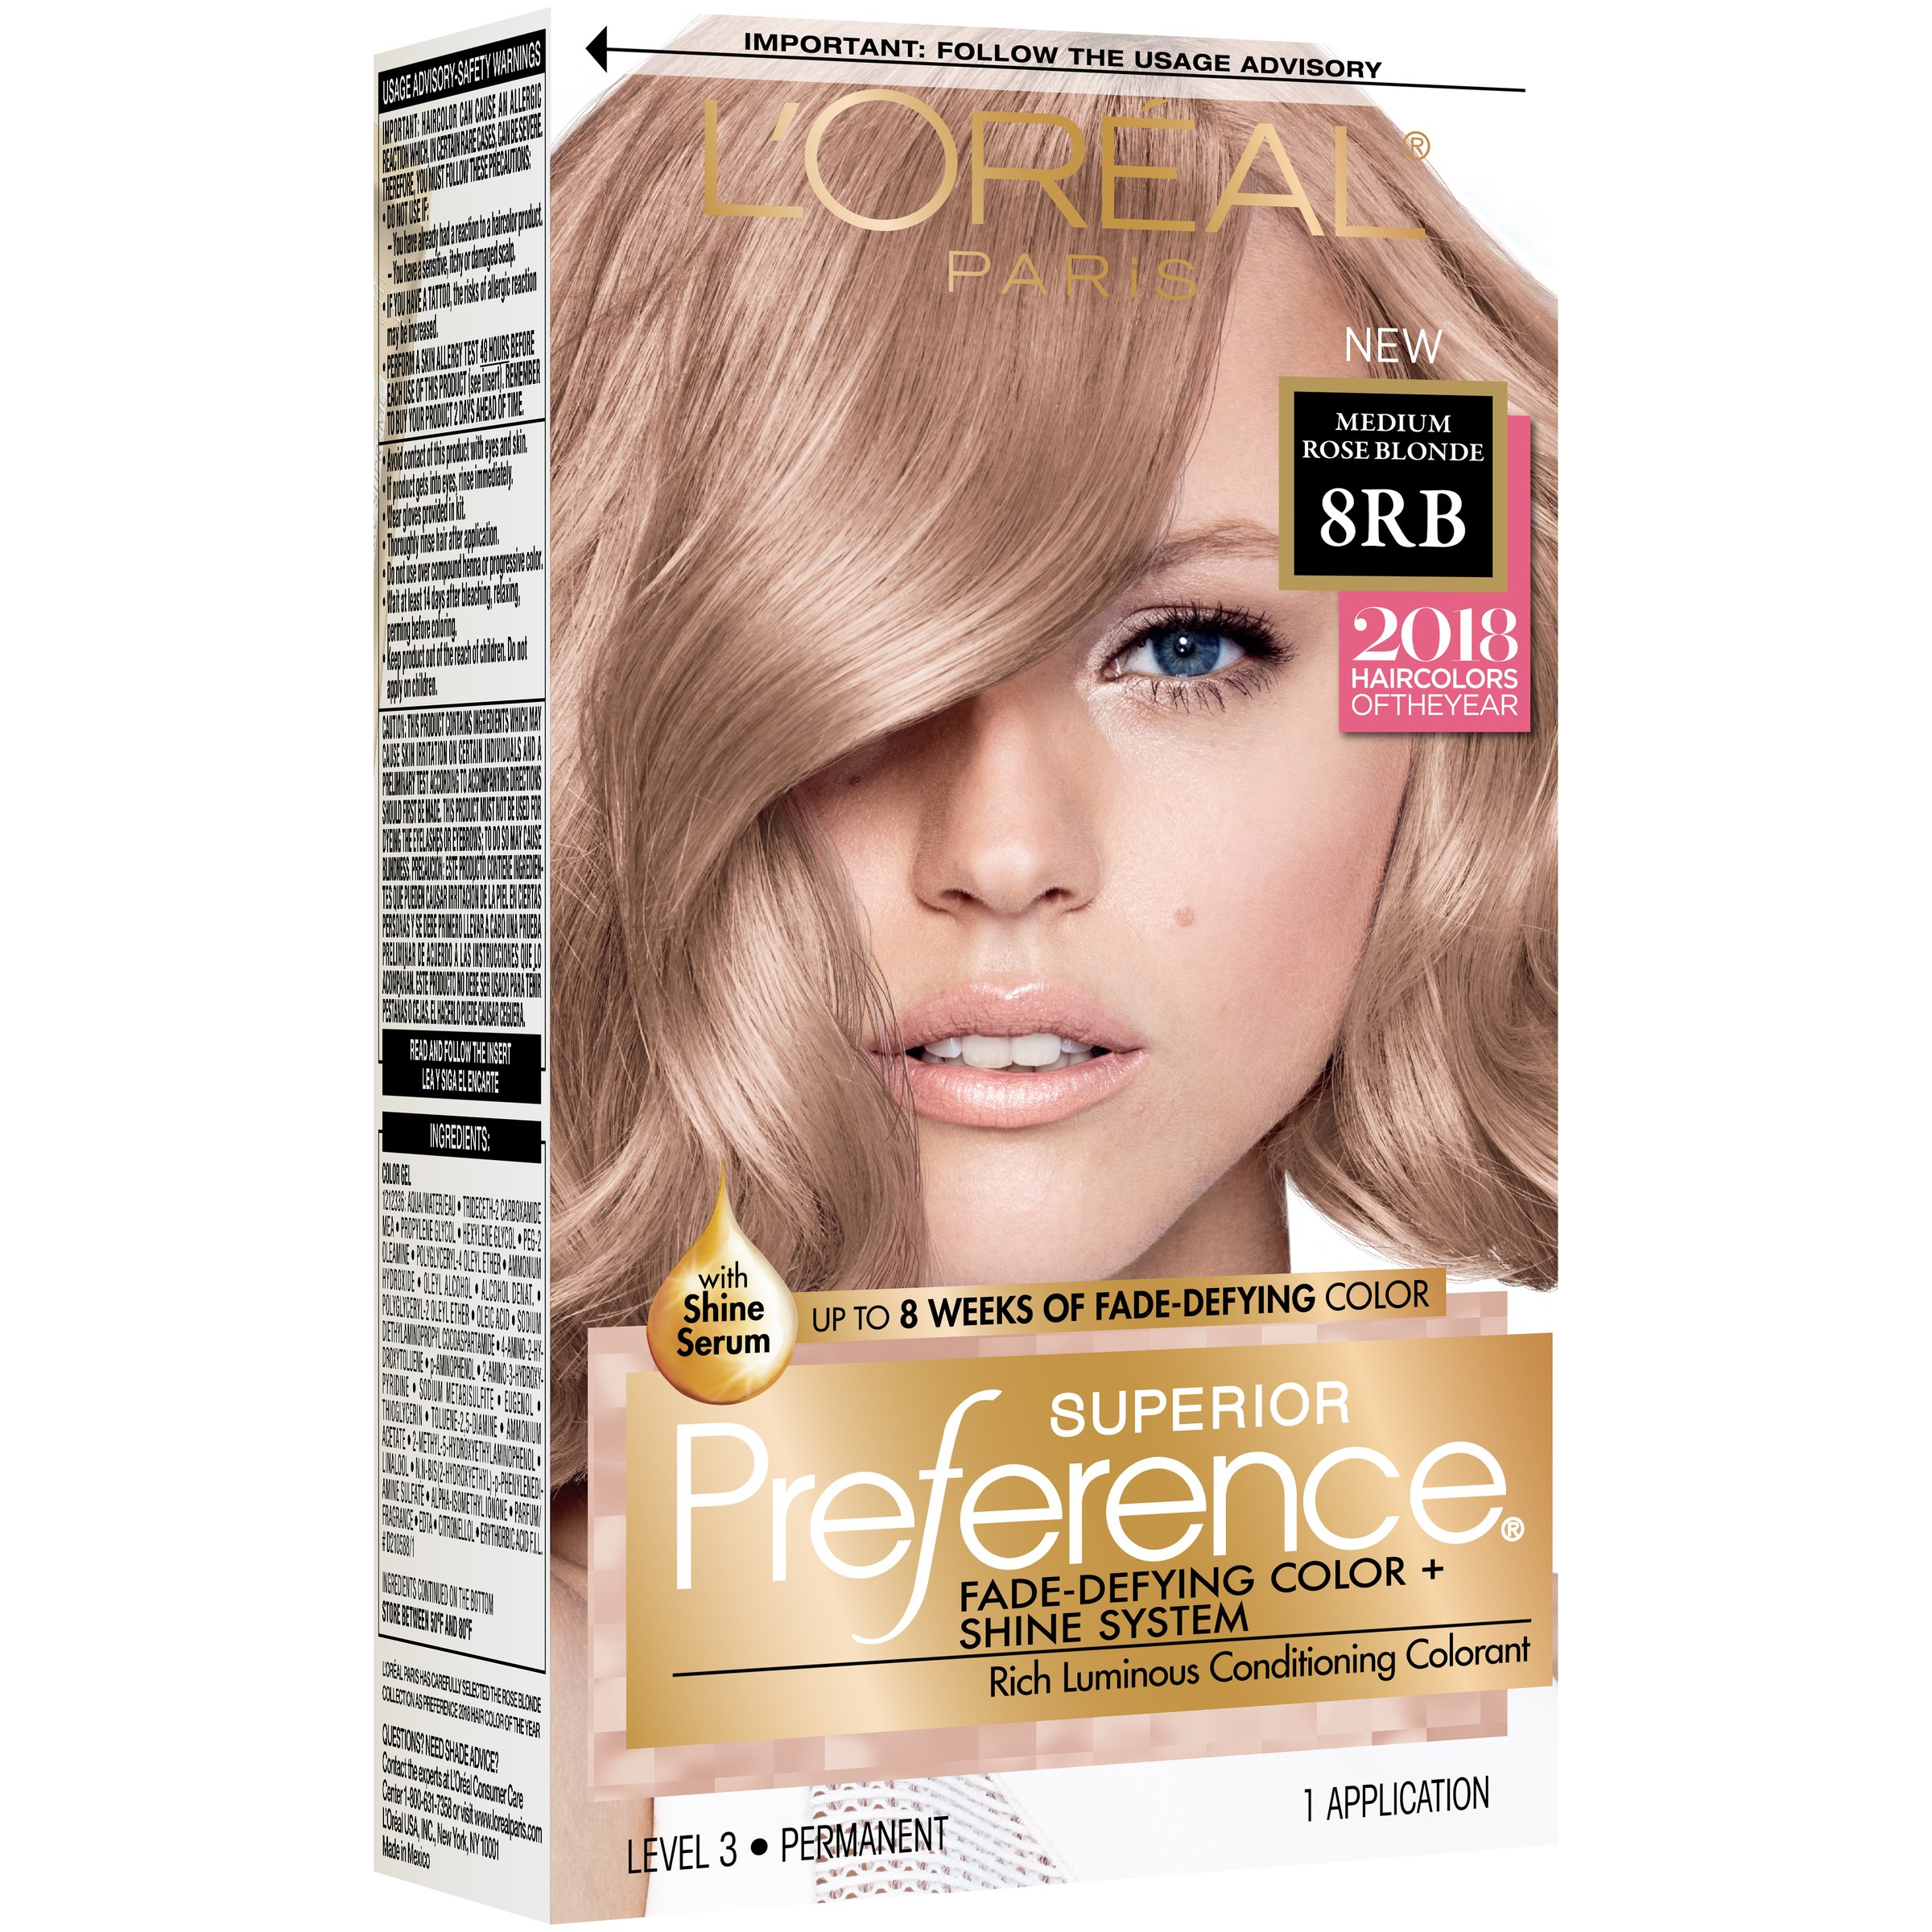 Loreal Preference Color Chart Hairstyle Inspirations 2018